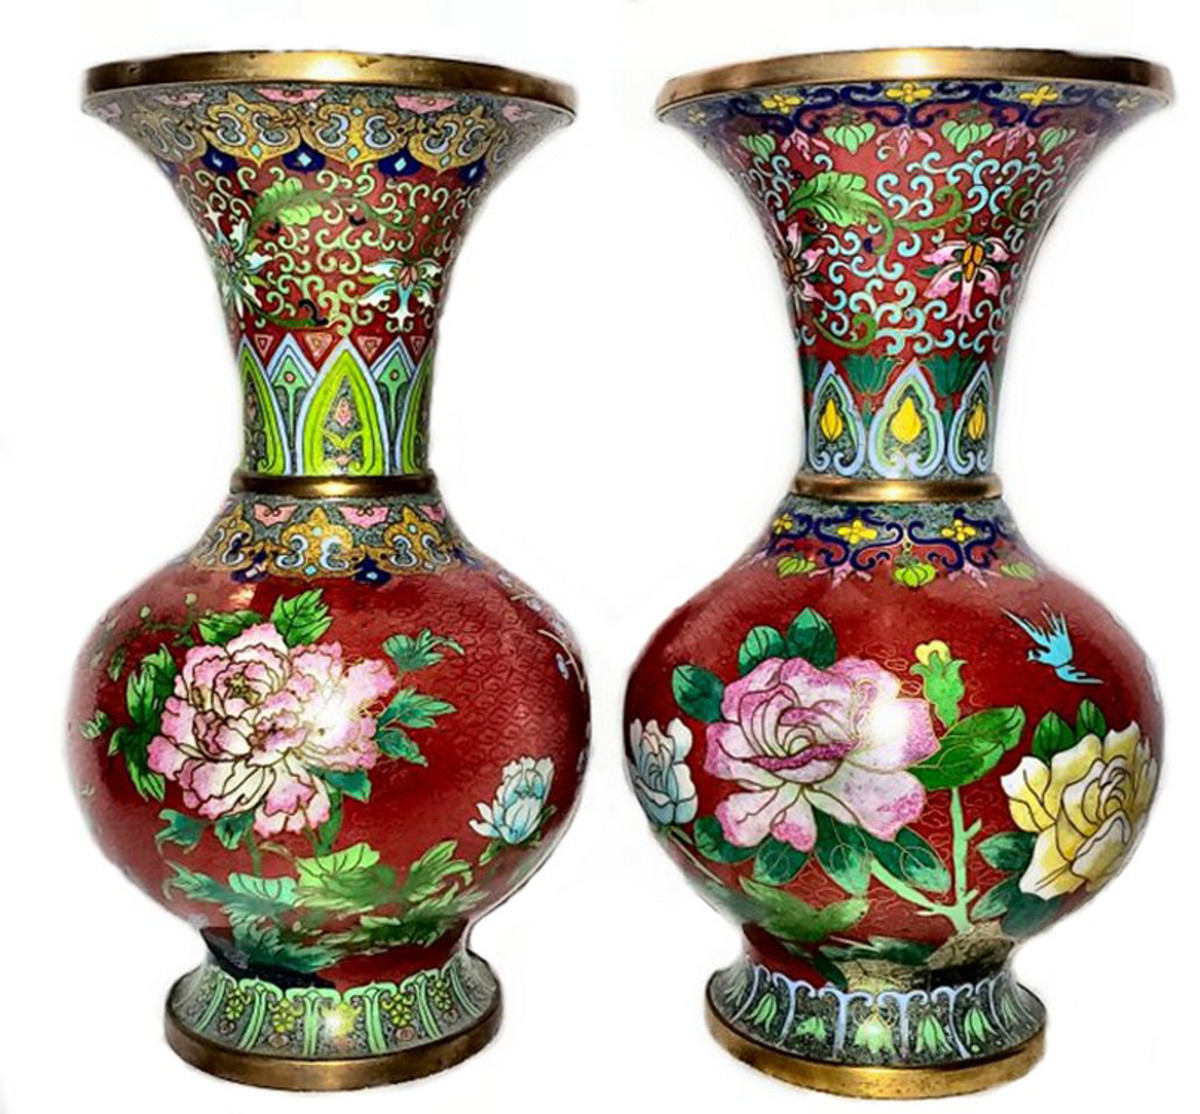 The enameling in cloisonné is overall, whereas the enameling in champlevé is done in well delineated areas. In this pair of large cloisonné vases, the base metal is clearly visible at the base and rims.